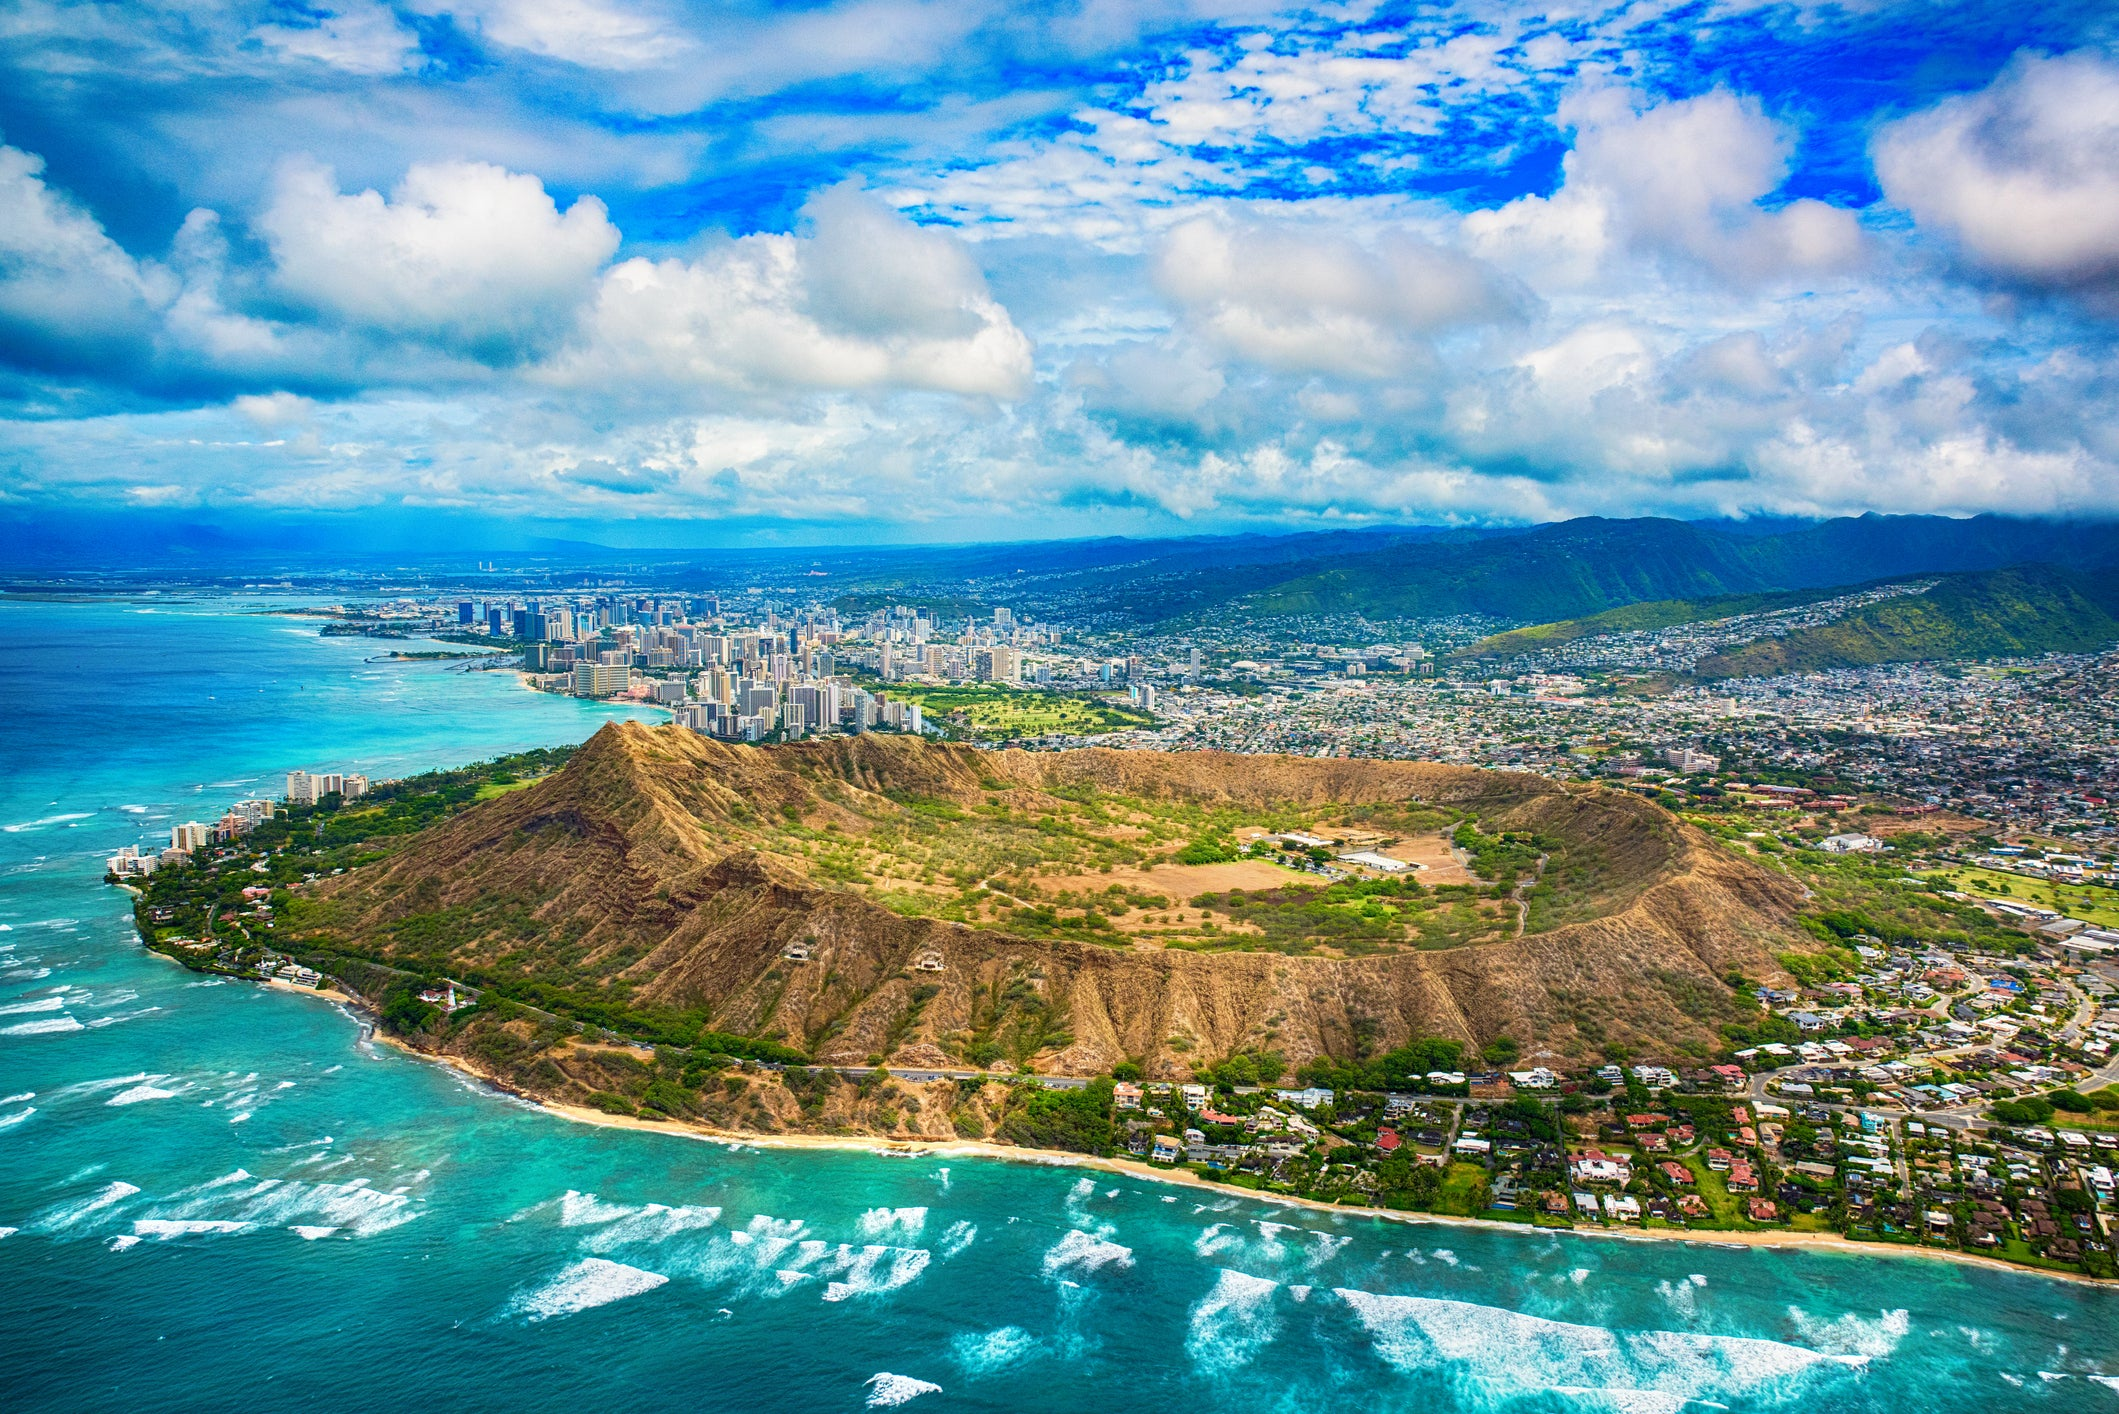 How Hawaii's reopening shows challenges facing tourism into 2021